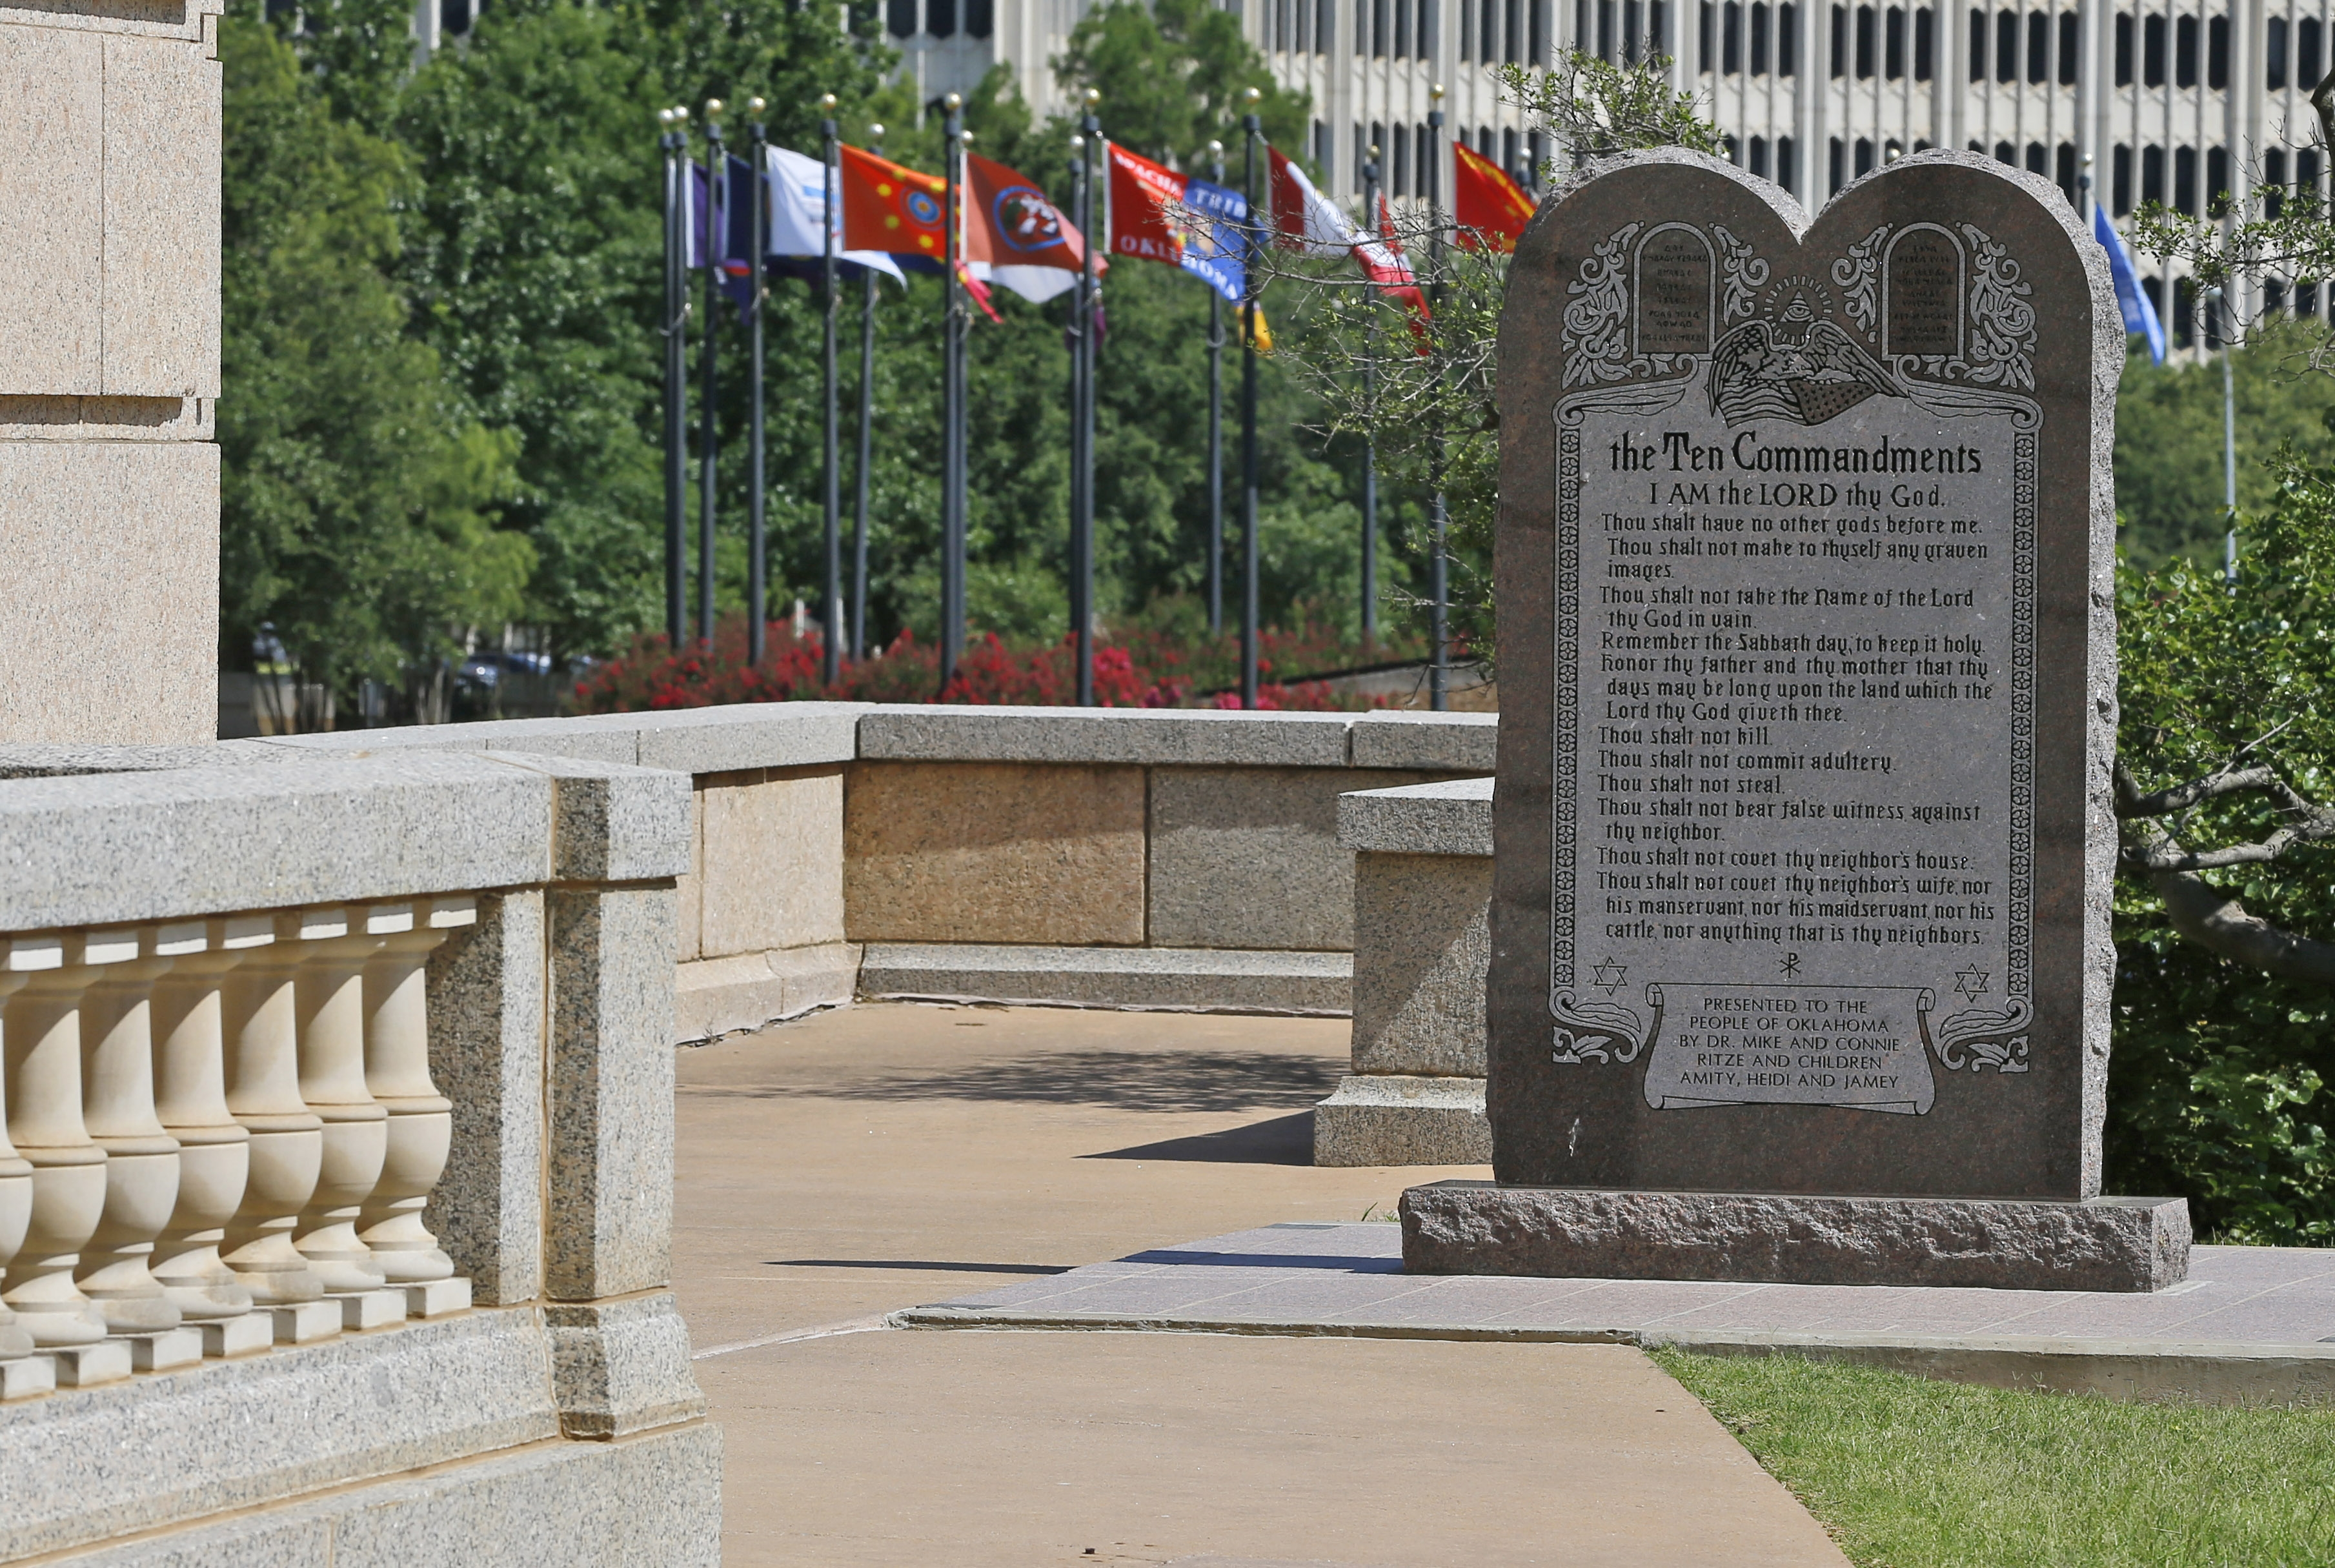 The Ten Commandments monument is pictured at the state Capitol in Oklahoma City, Tuesday, June 30, 2015. Oklahoma''s Supreme Court says the monument must be removed because it indirectly benefits the Jewish and Christian faiths in violation of the state constitution.